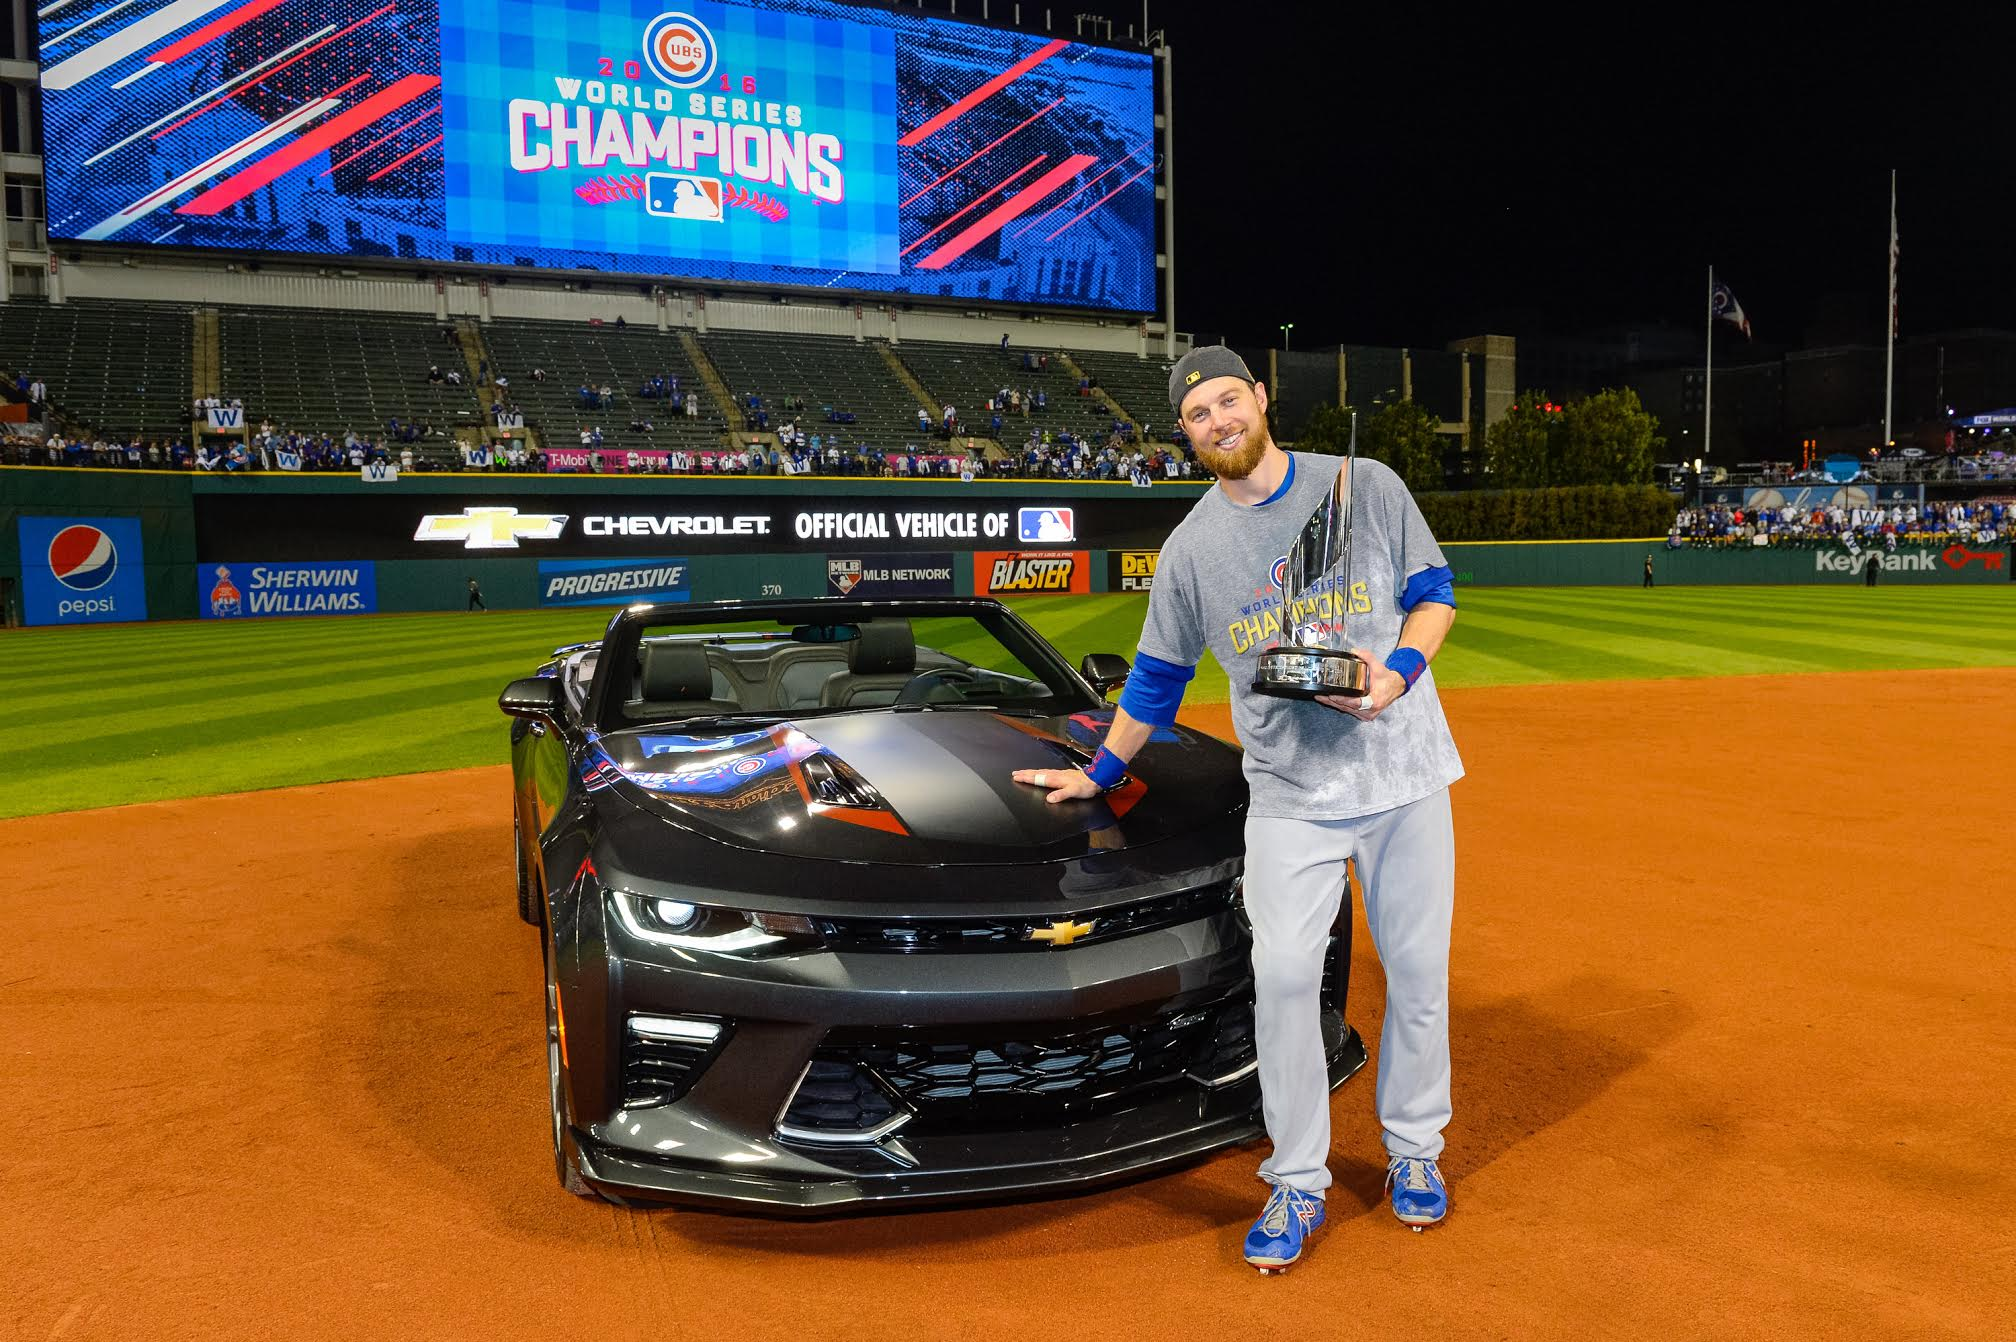 2017 Camaro 50th Anniversary >> World Series MVP Ben Zobrist gets keys to a new Chevy ...